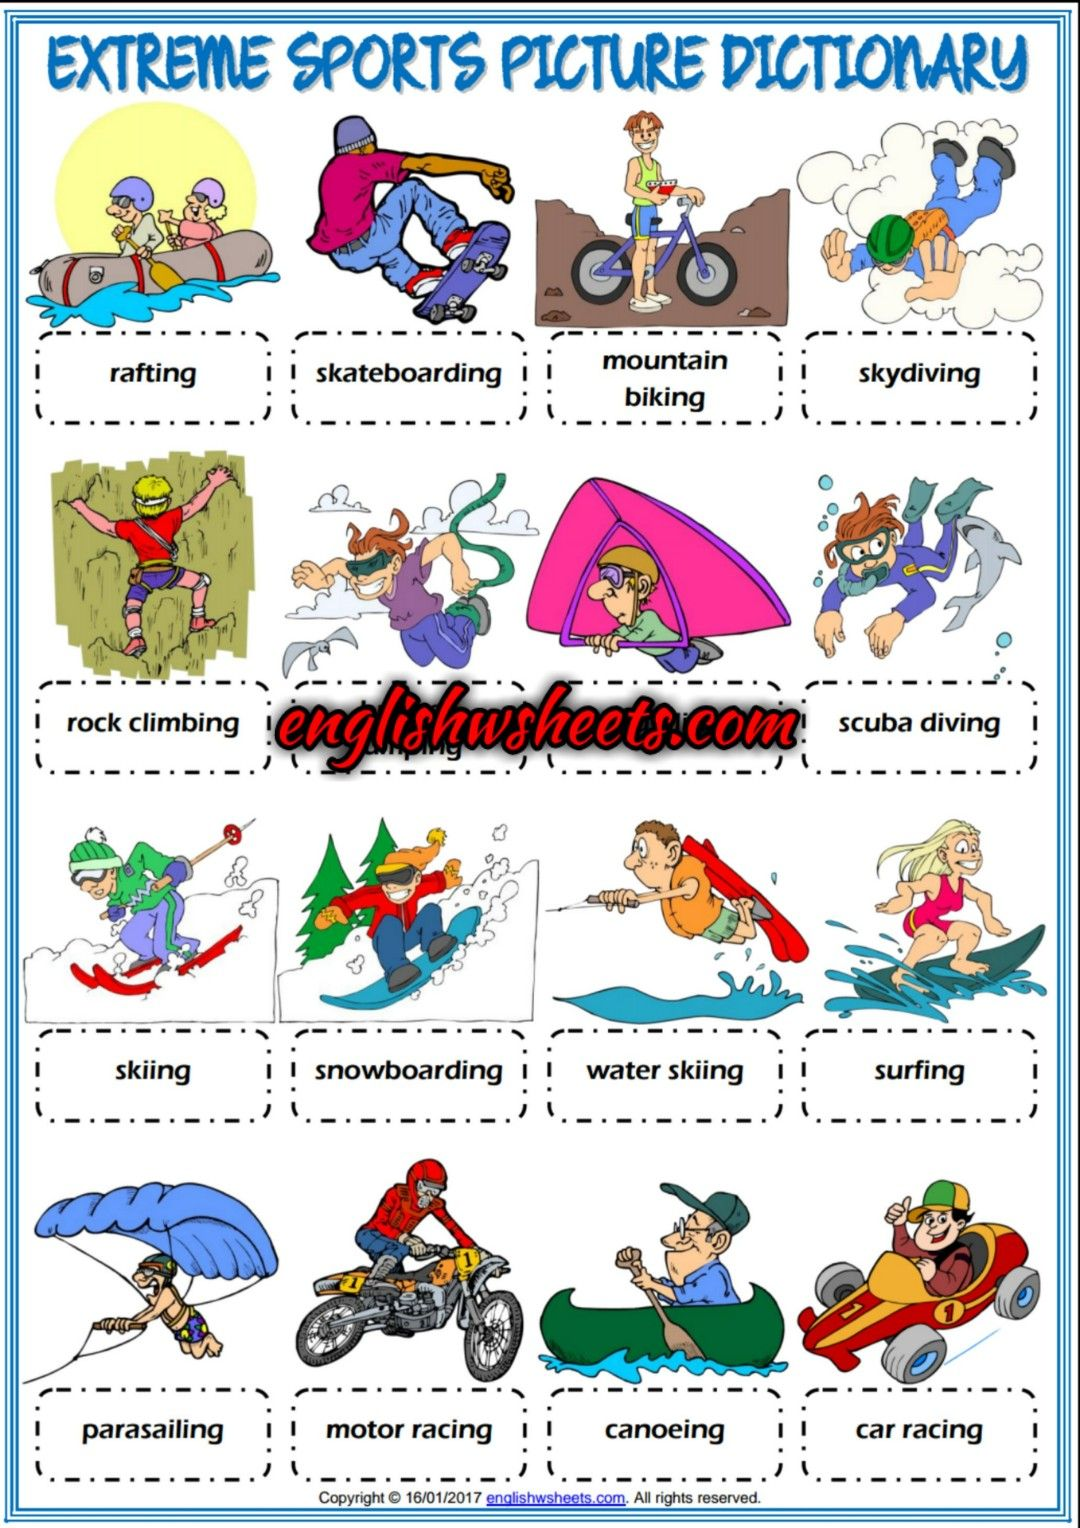 extreme sports esl printable picture dictionary for kids angol angol. Black Bedroom Furniture Sets. Home Design Ideas